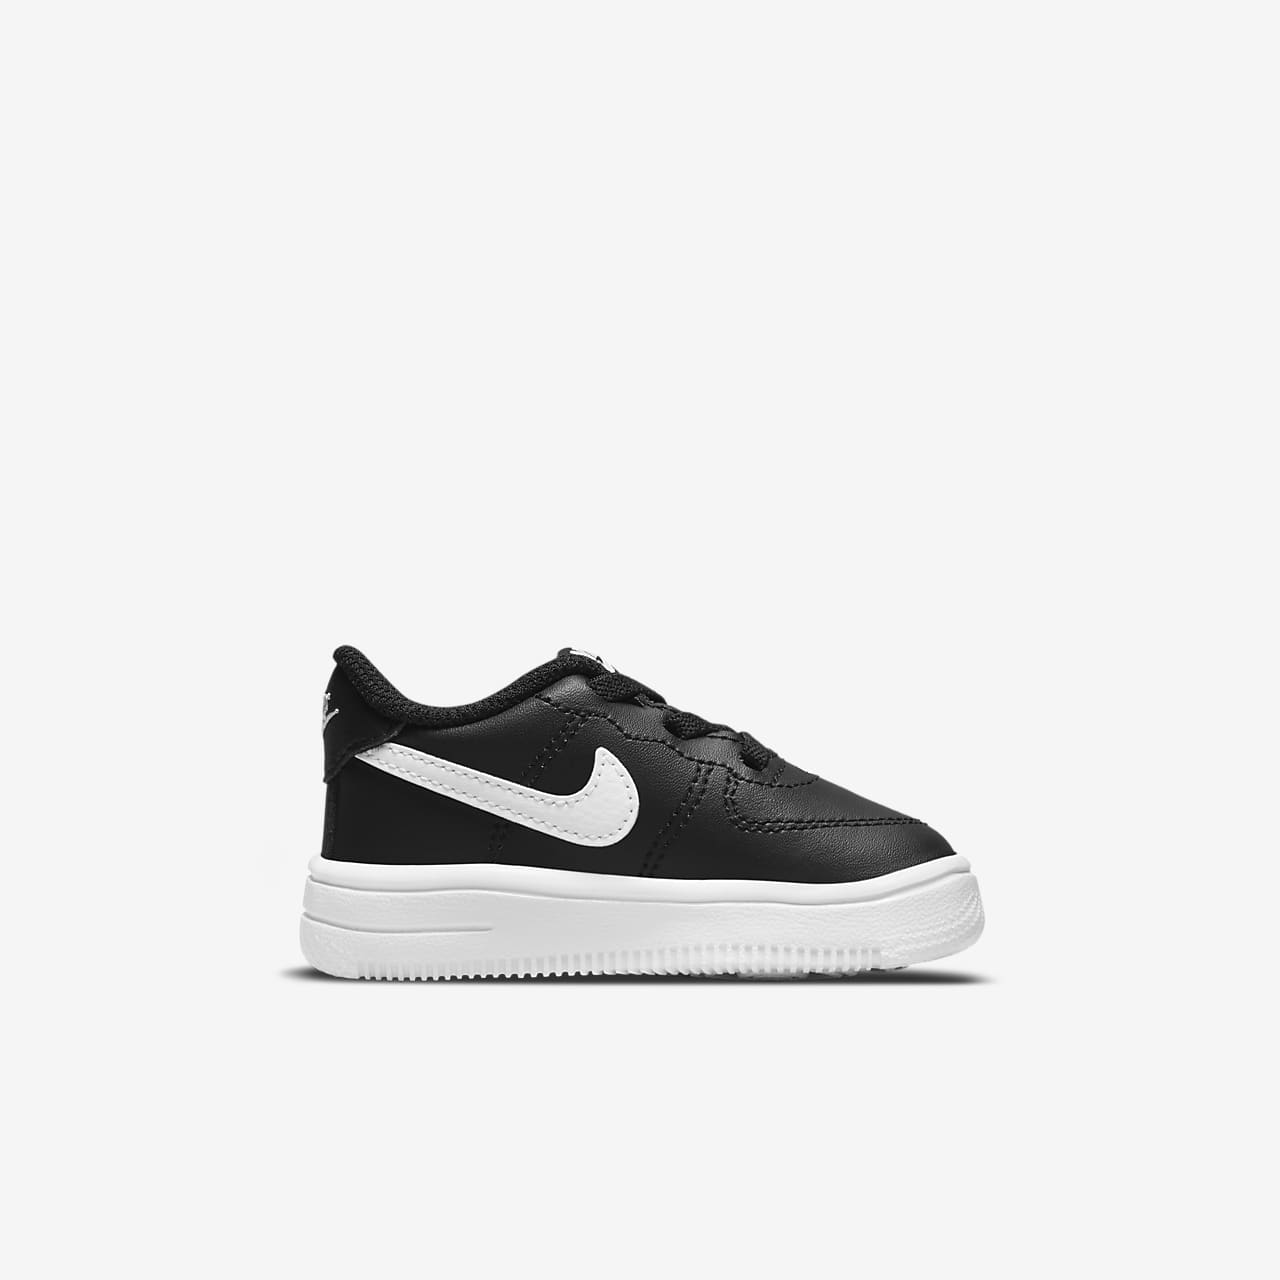 51f32d2dac52a Chaussure Nike Air Force 1 iD pour Petit enfant. Nike.com MA